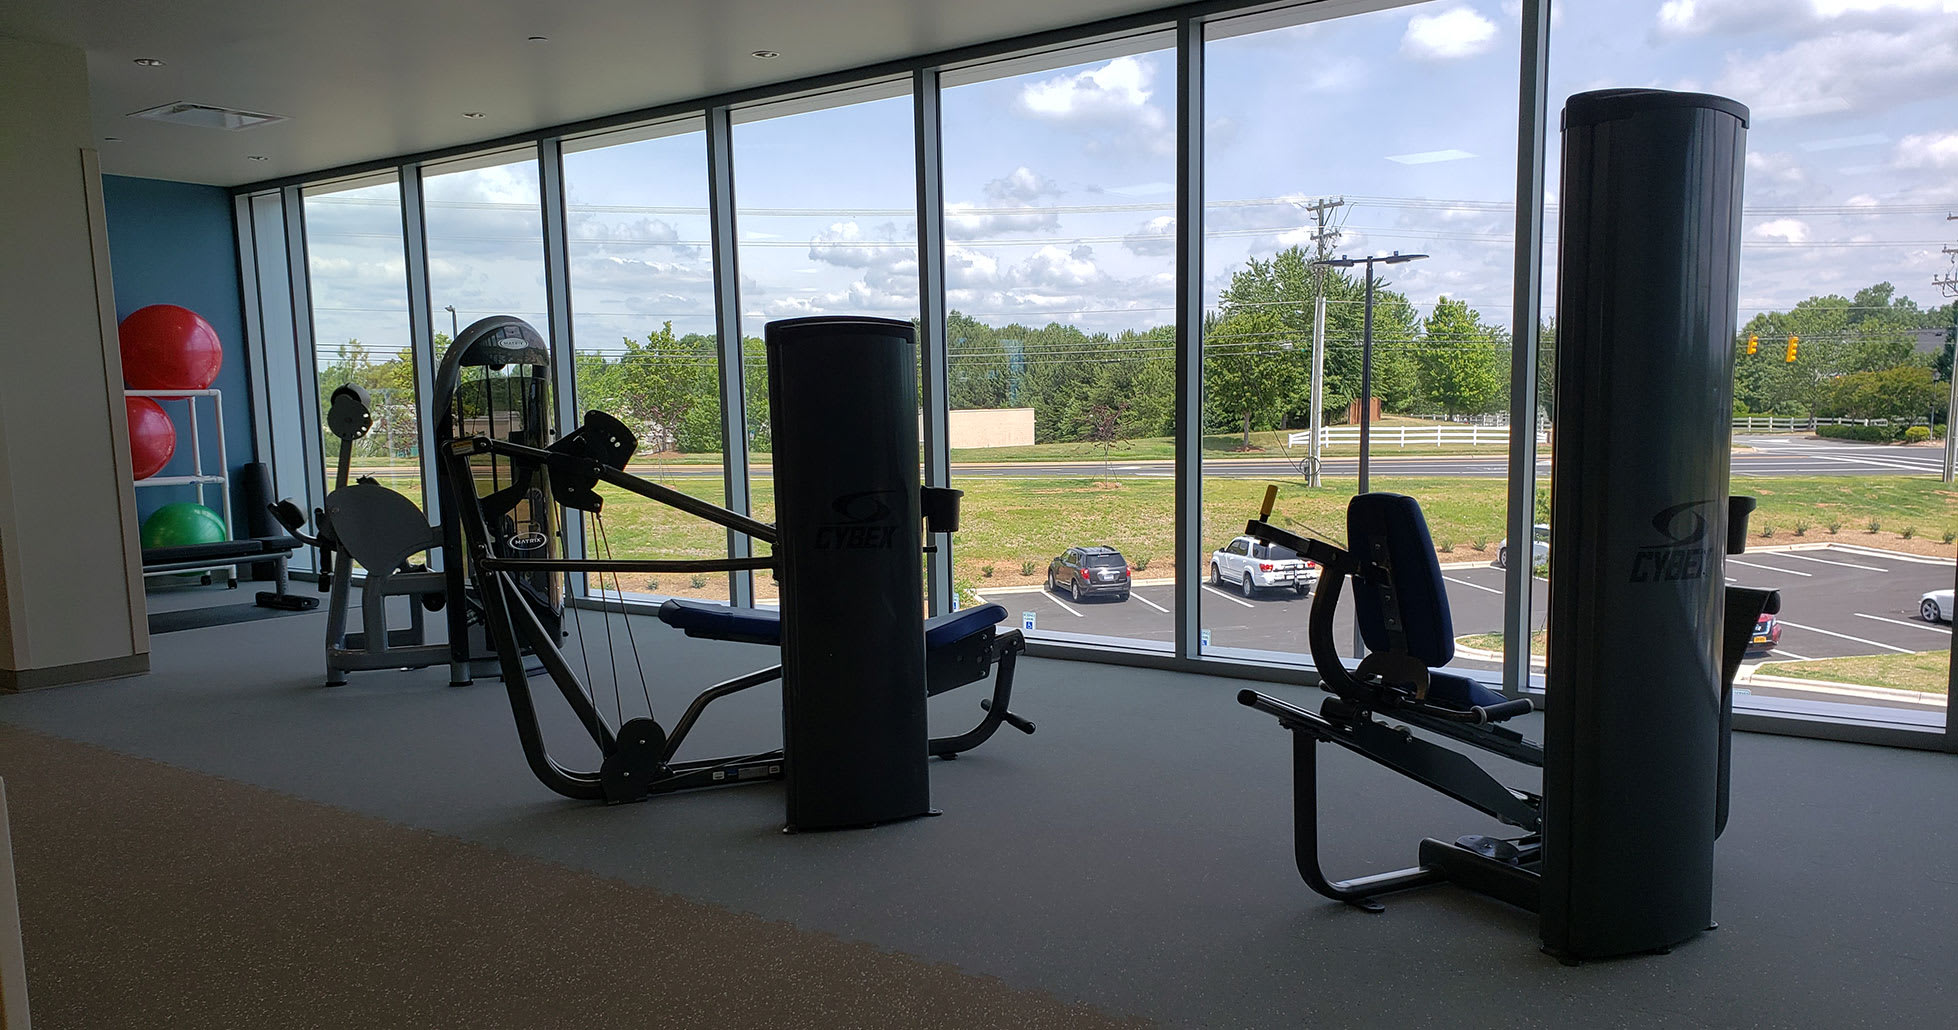 Physical therapy eqiupment